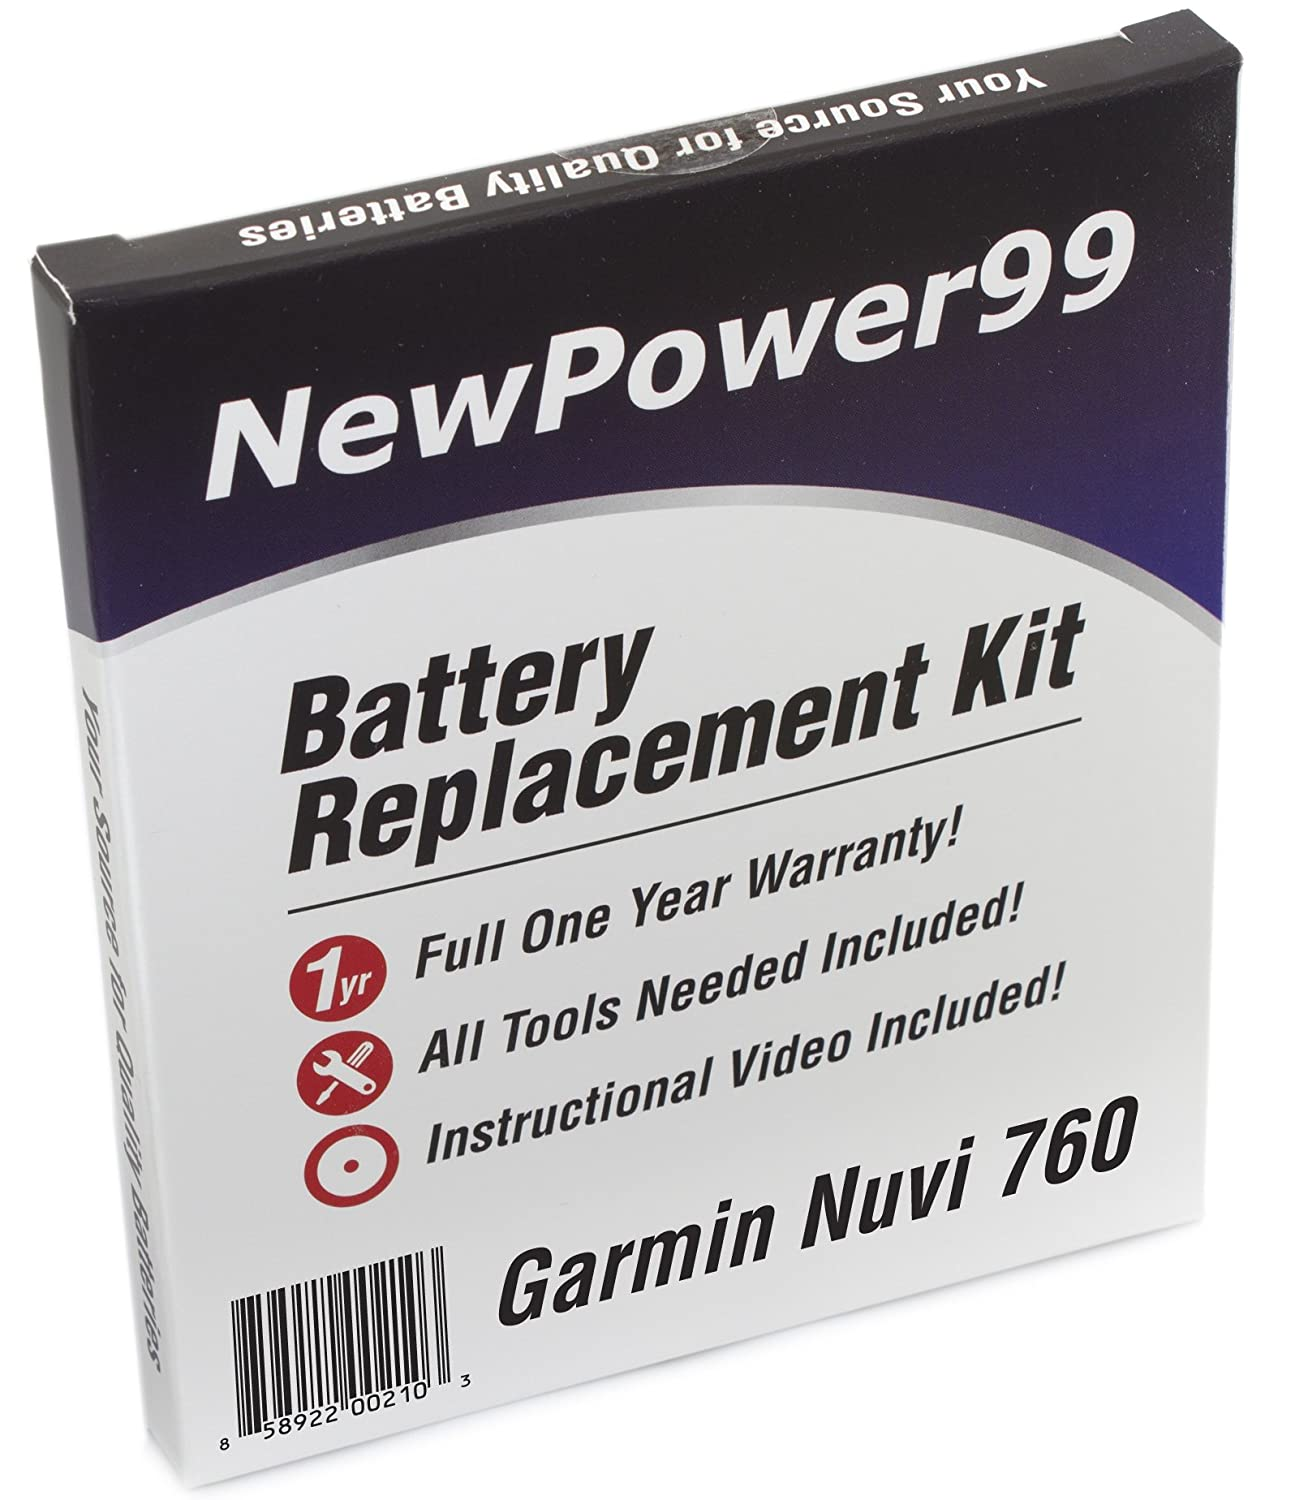 Garmin Nuvi 760 Battery Replacement Kit with Installation Video, Tools, and Extended Life Battery. NewPower99